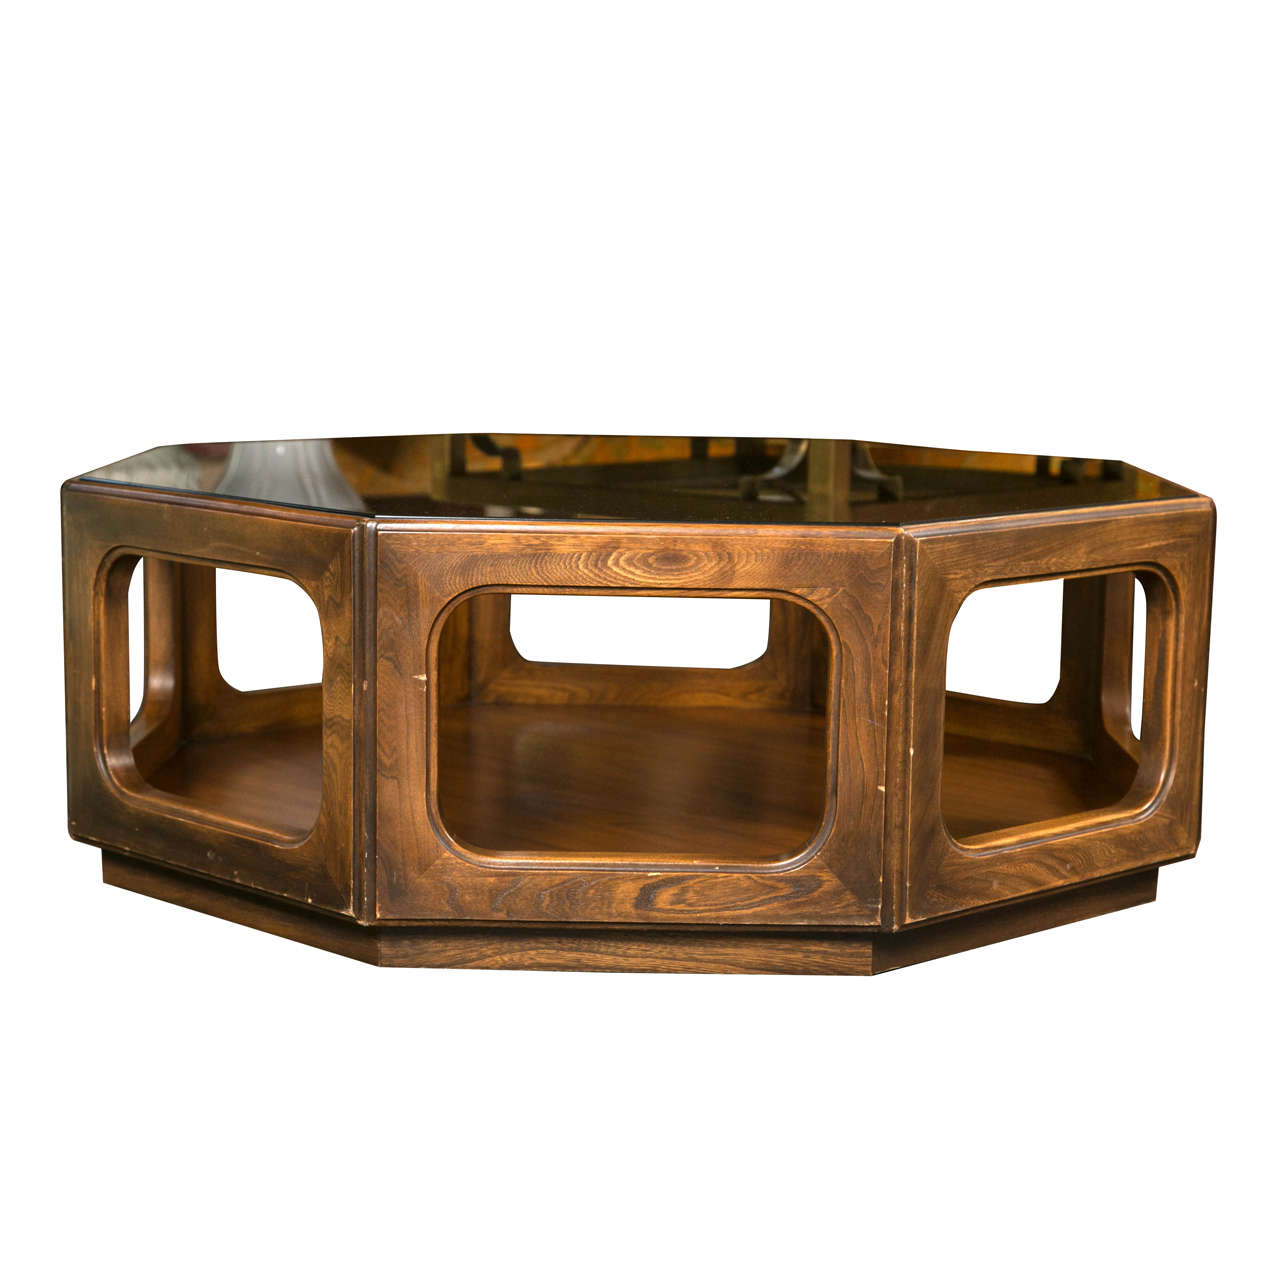 Octagonal midcentury glass top coffee table for sale at for Coffee tables glass top